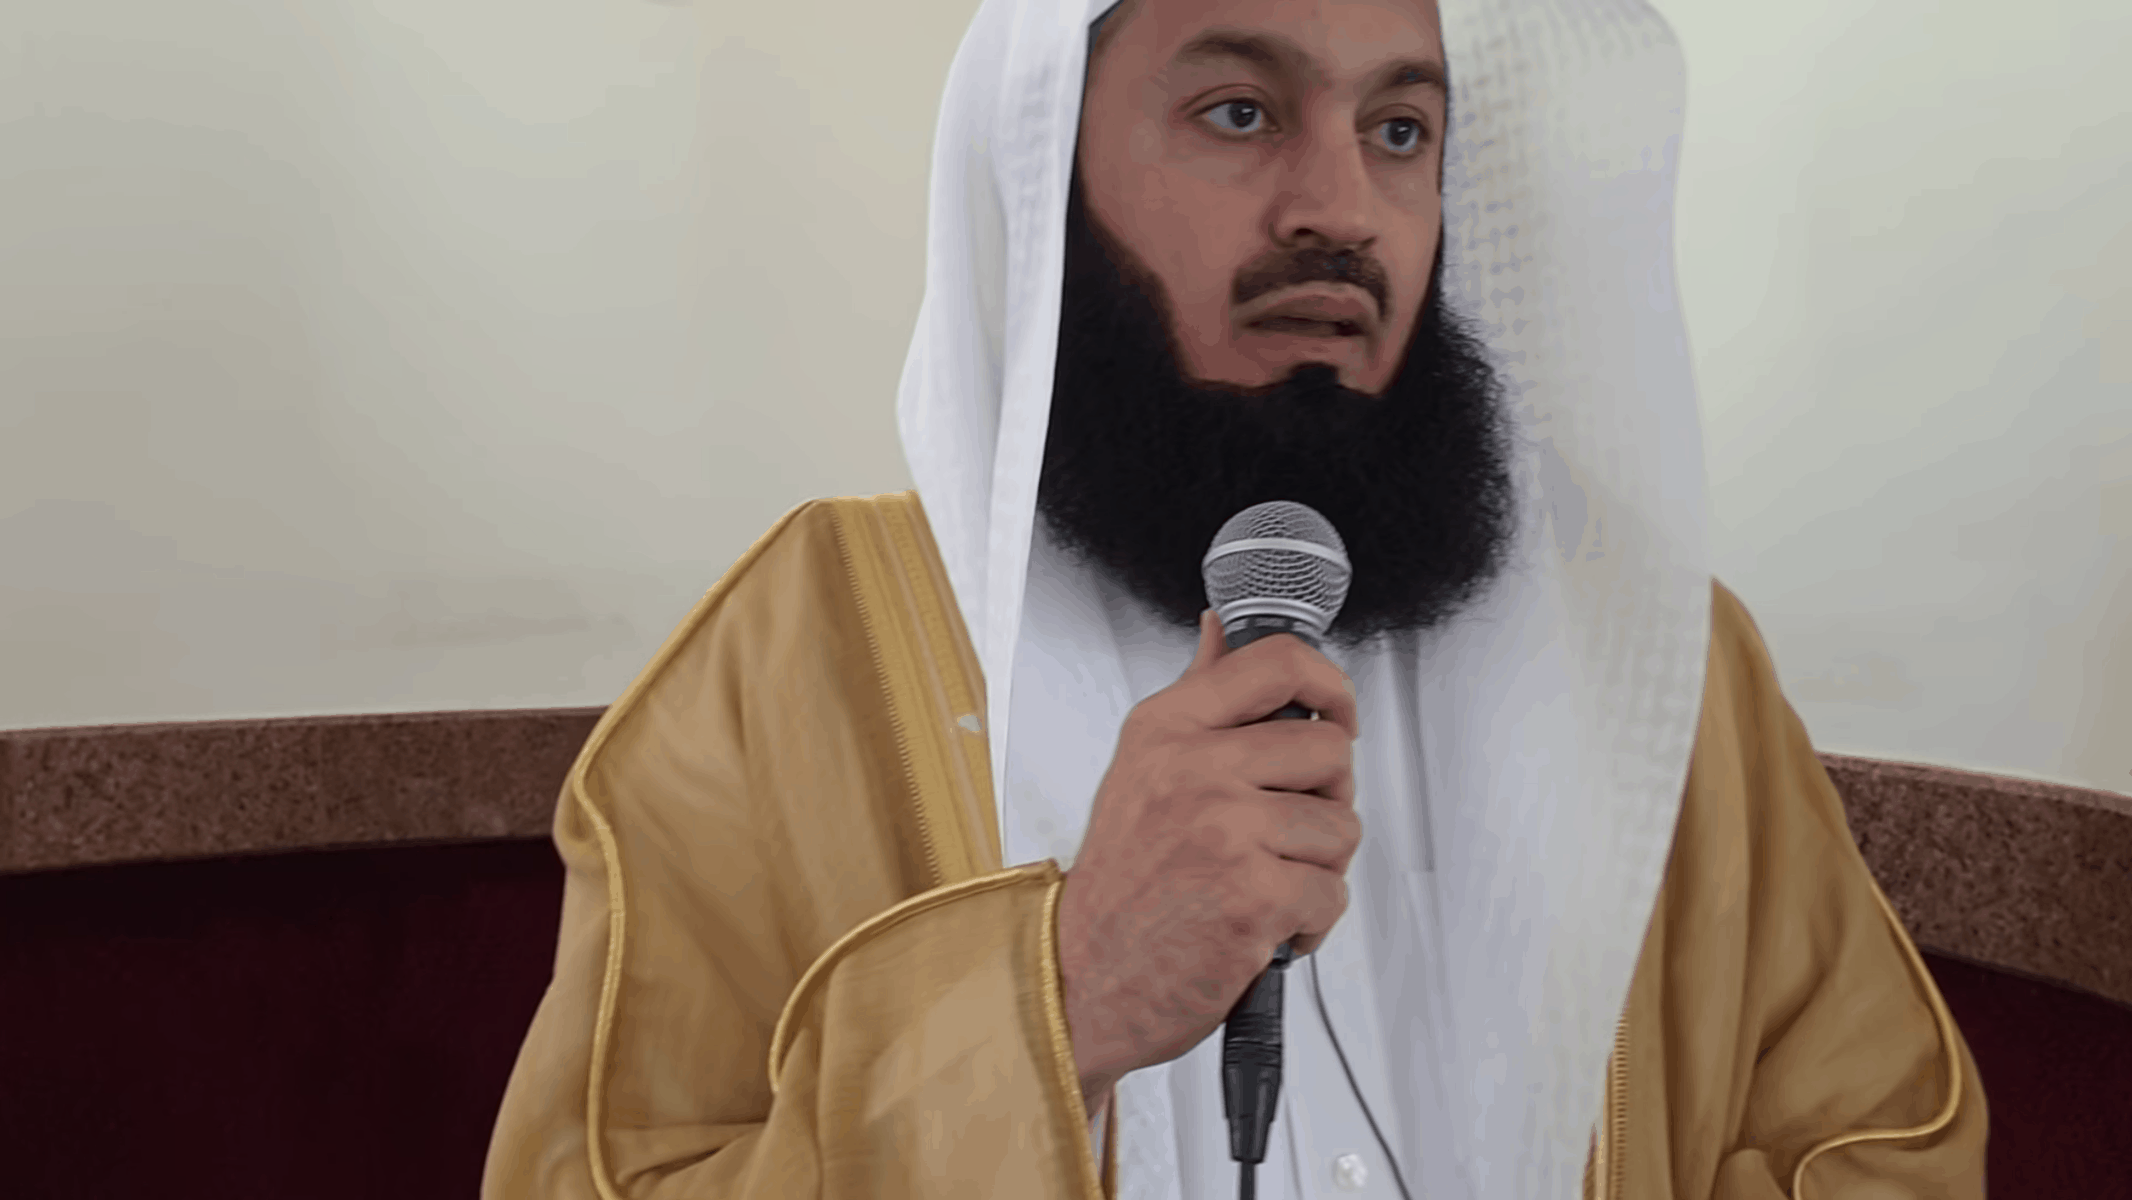 Ismail ibn Musa Menk – Effects of Irresponsible Speech